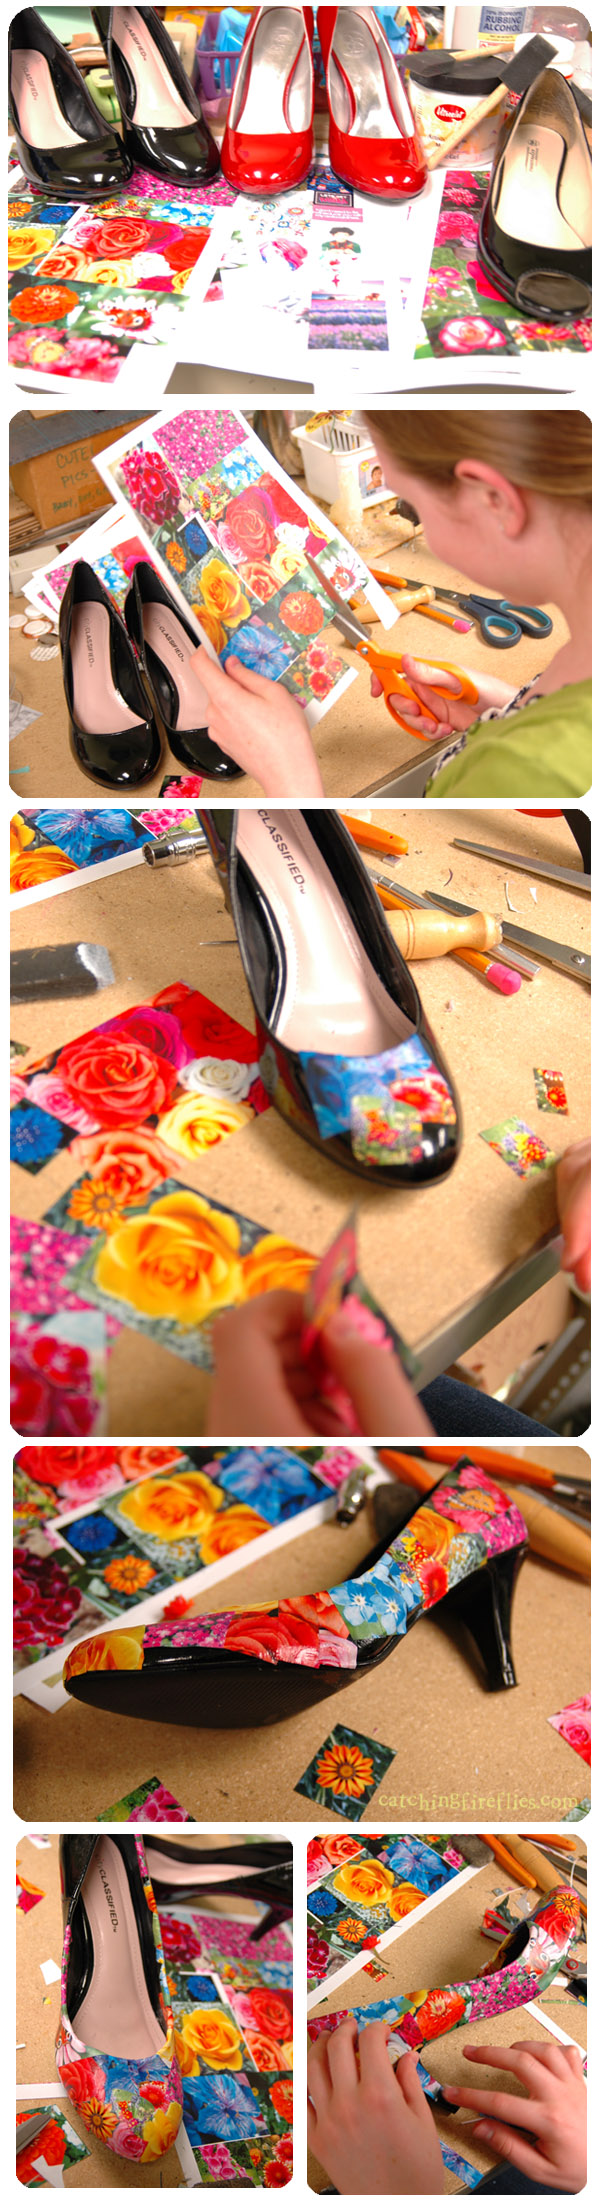 diy shoe heels projects ideas makeover